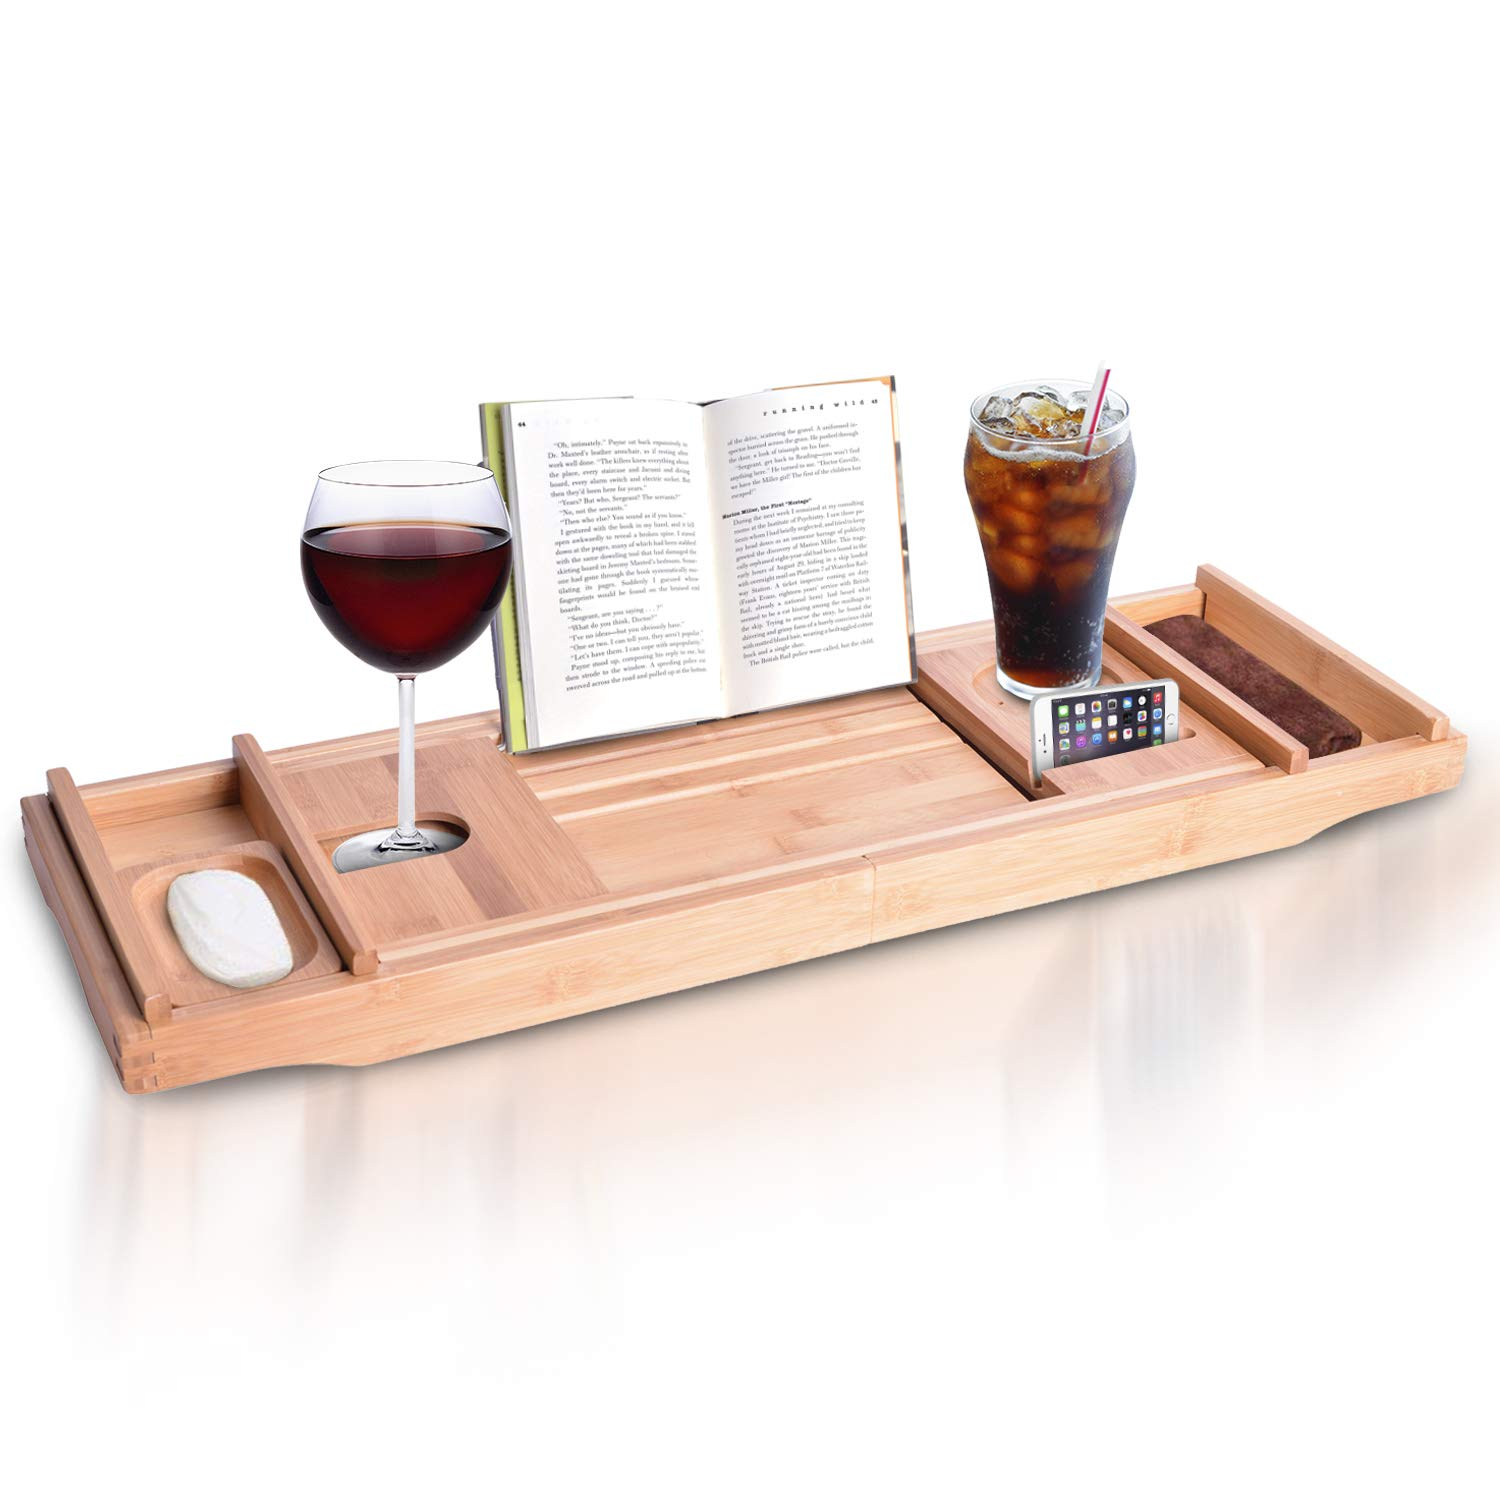 Bamboo Bathtub Caddy Tray Shelf - Natural Wooden Bath Tub Table Tray Caddy for Tub with Wine and Book Holder - Extending Sides over Every Tub - Wood Rack Caddie Valet Across Tubs for One or Two Person